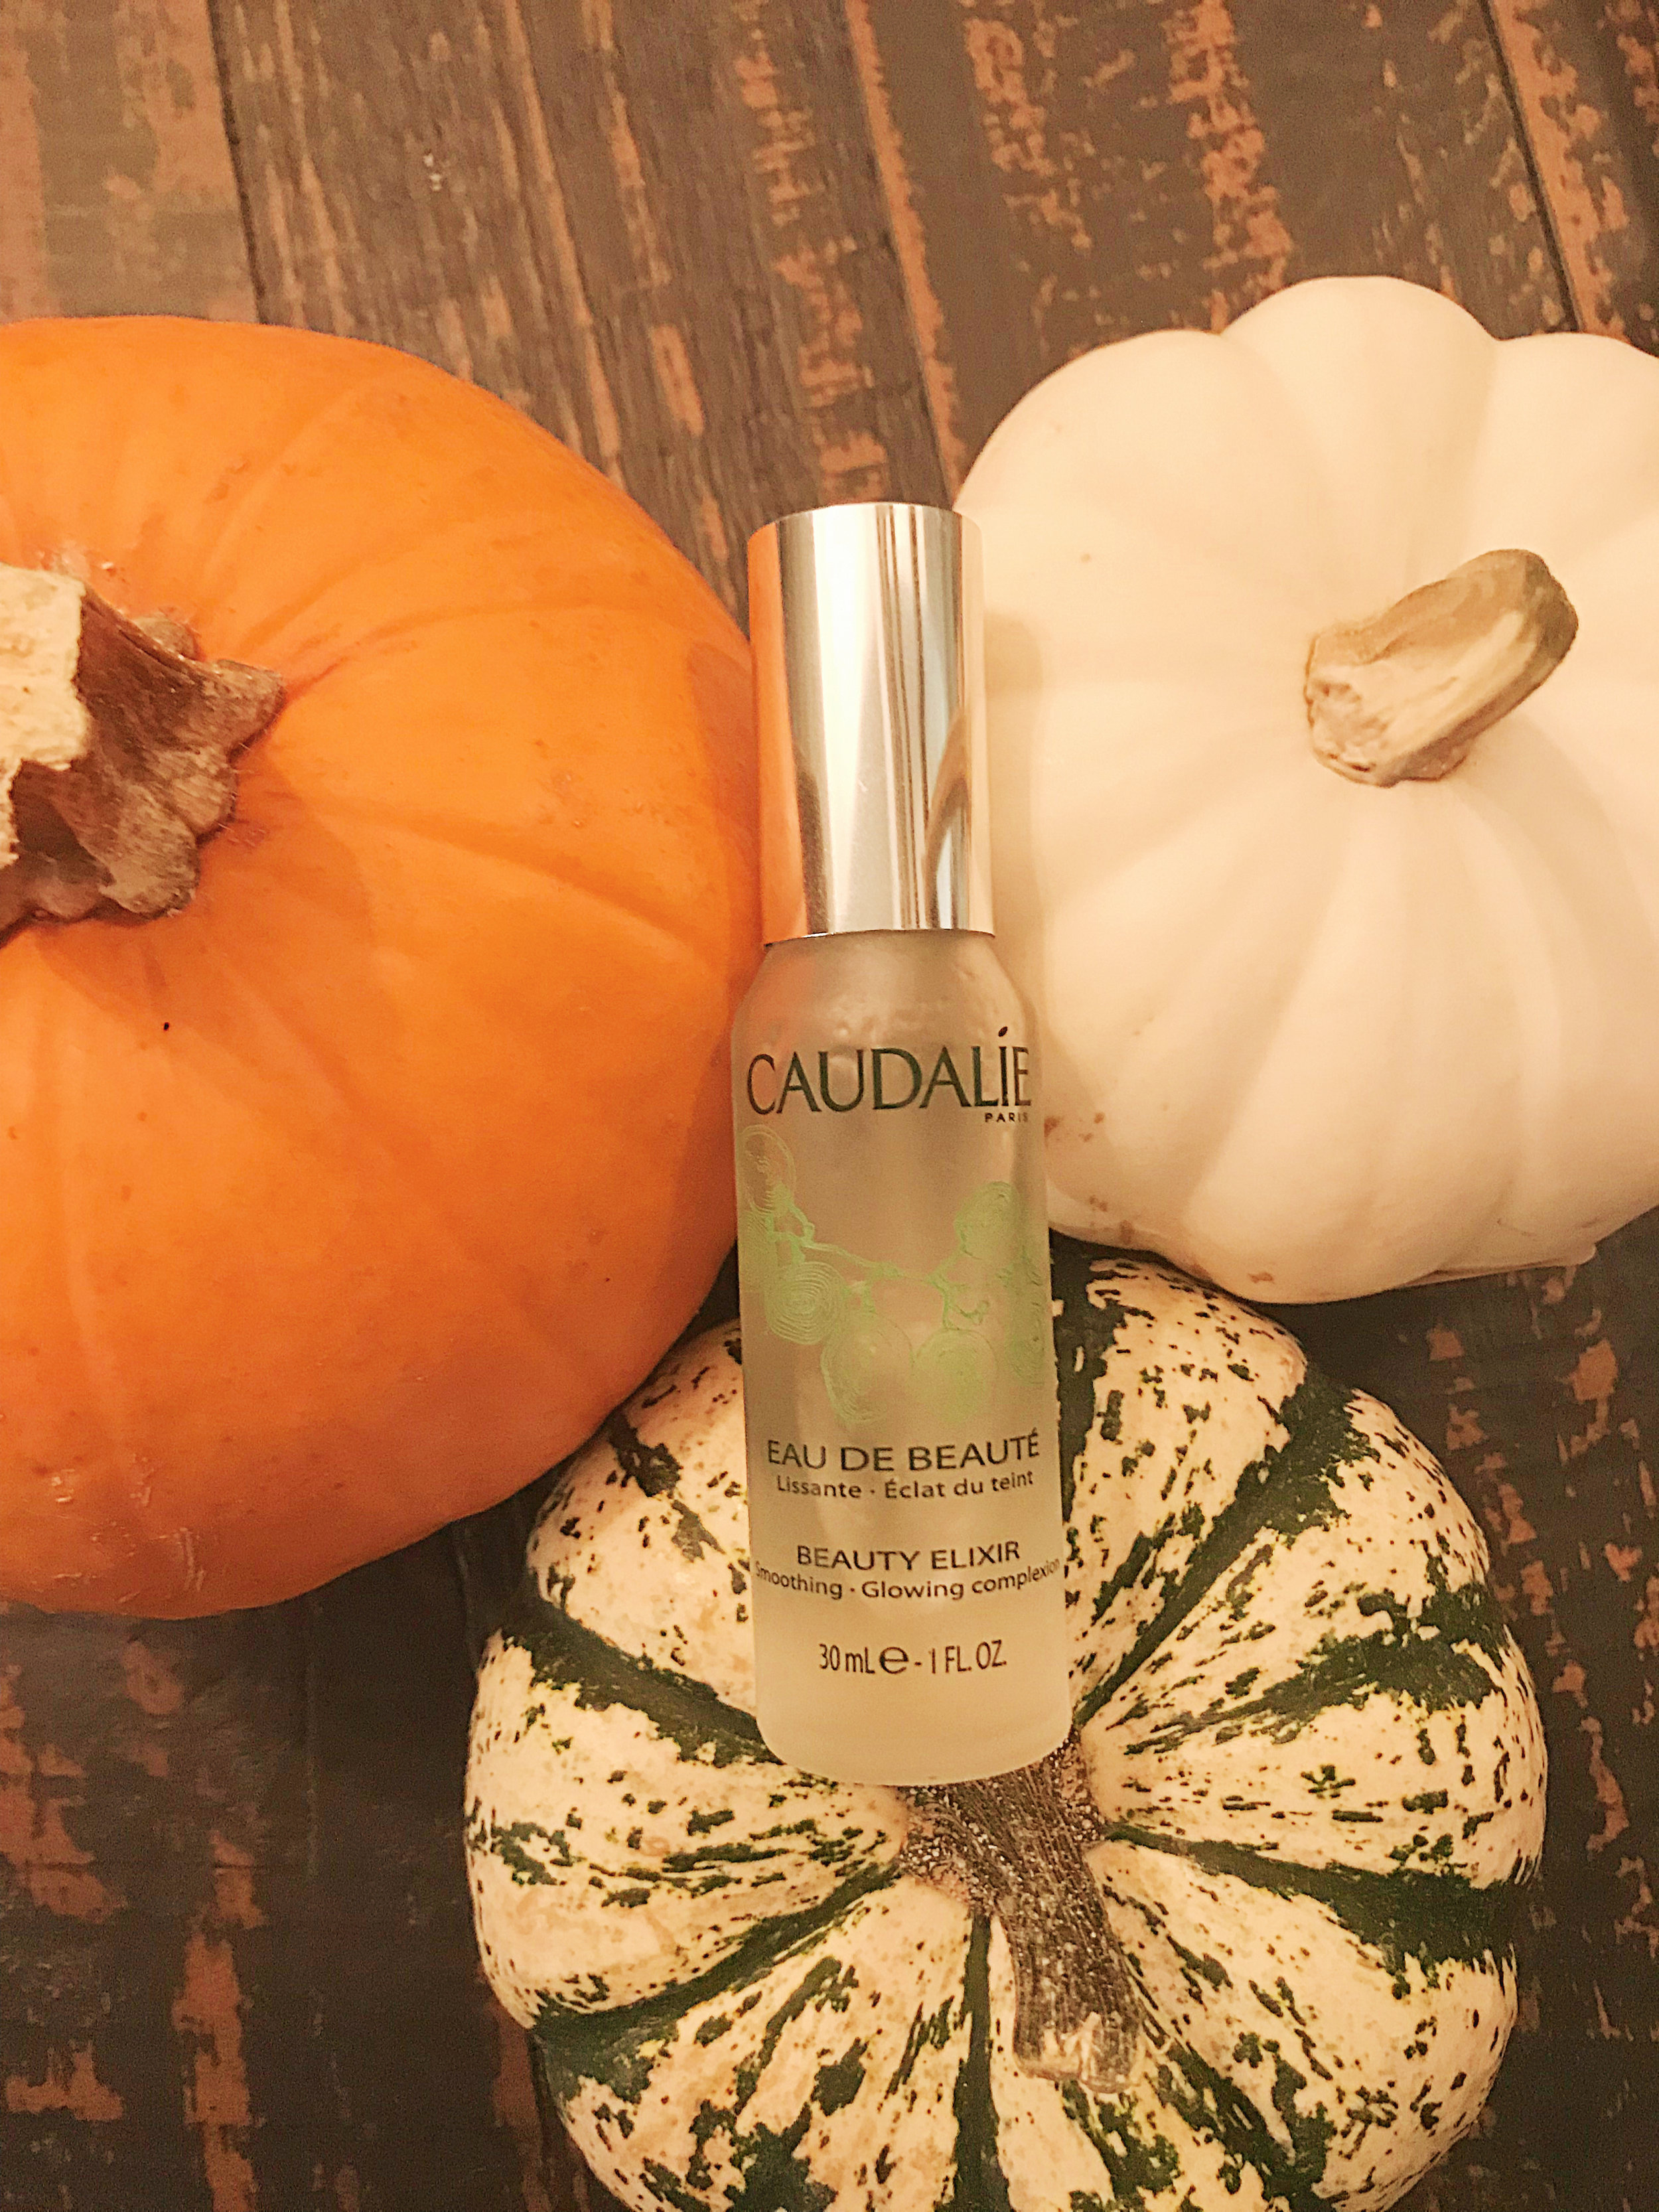 Caudalíe Beauty Elixir - This plant based anti-dull treatment helps smooth away fine lines while tightening your pores.